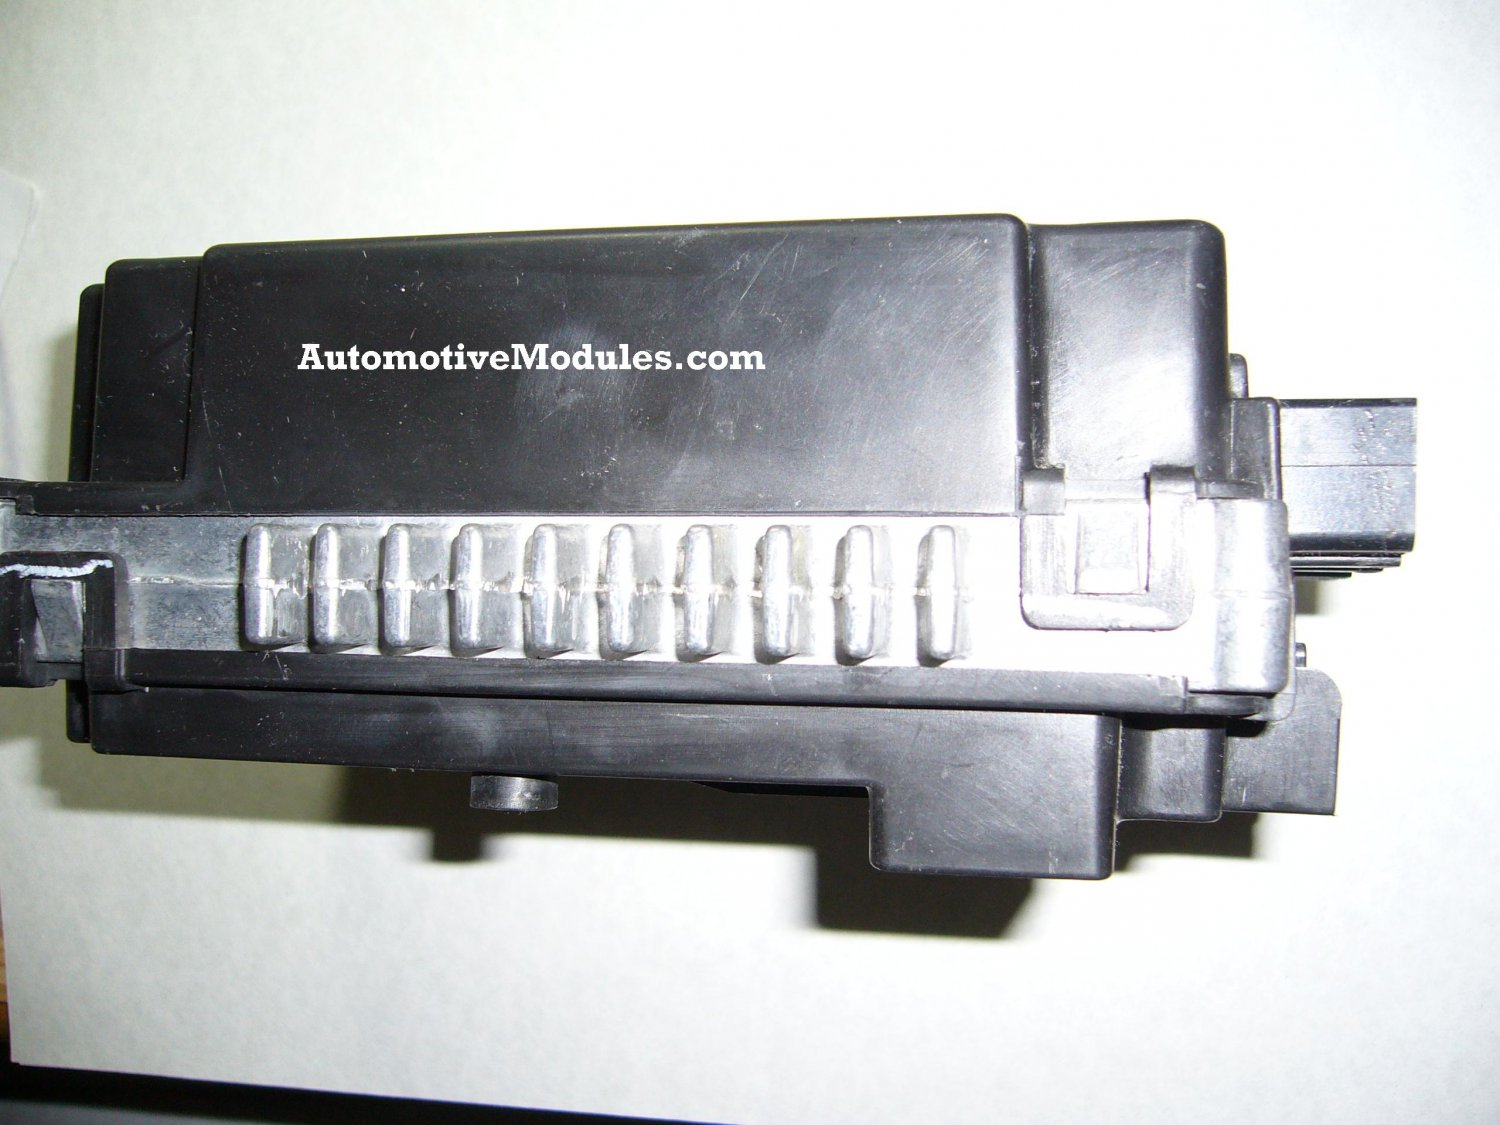 2000 Lincoln Town Car Light Control Module, Rebuilt $98